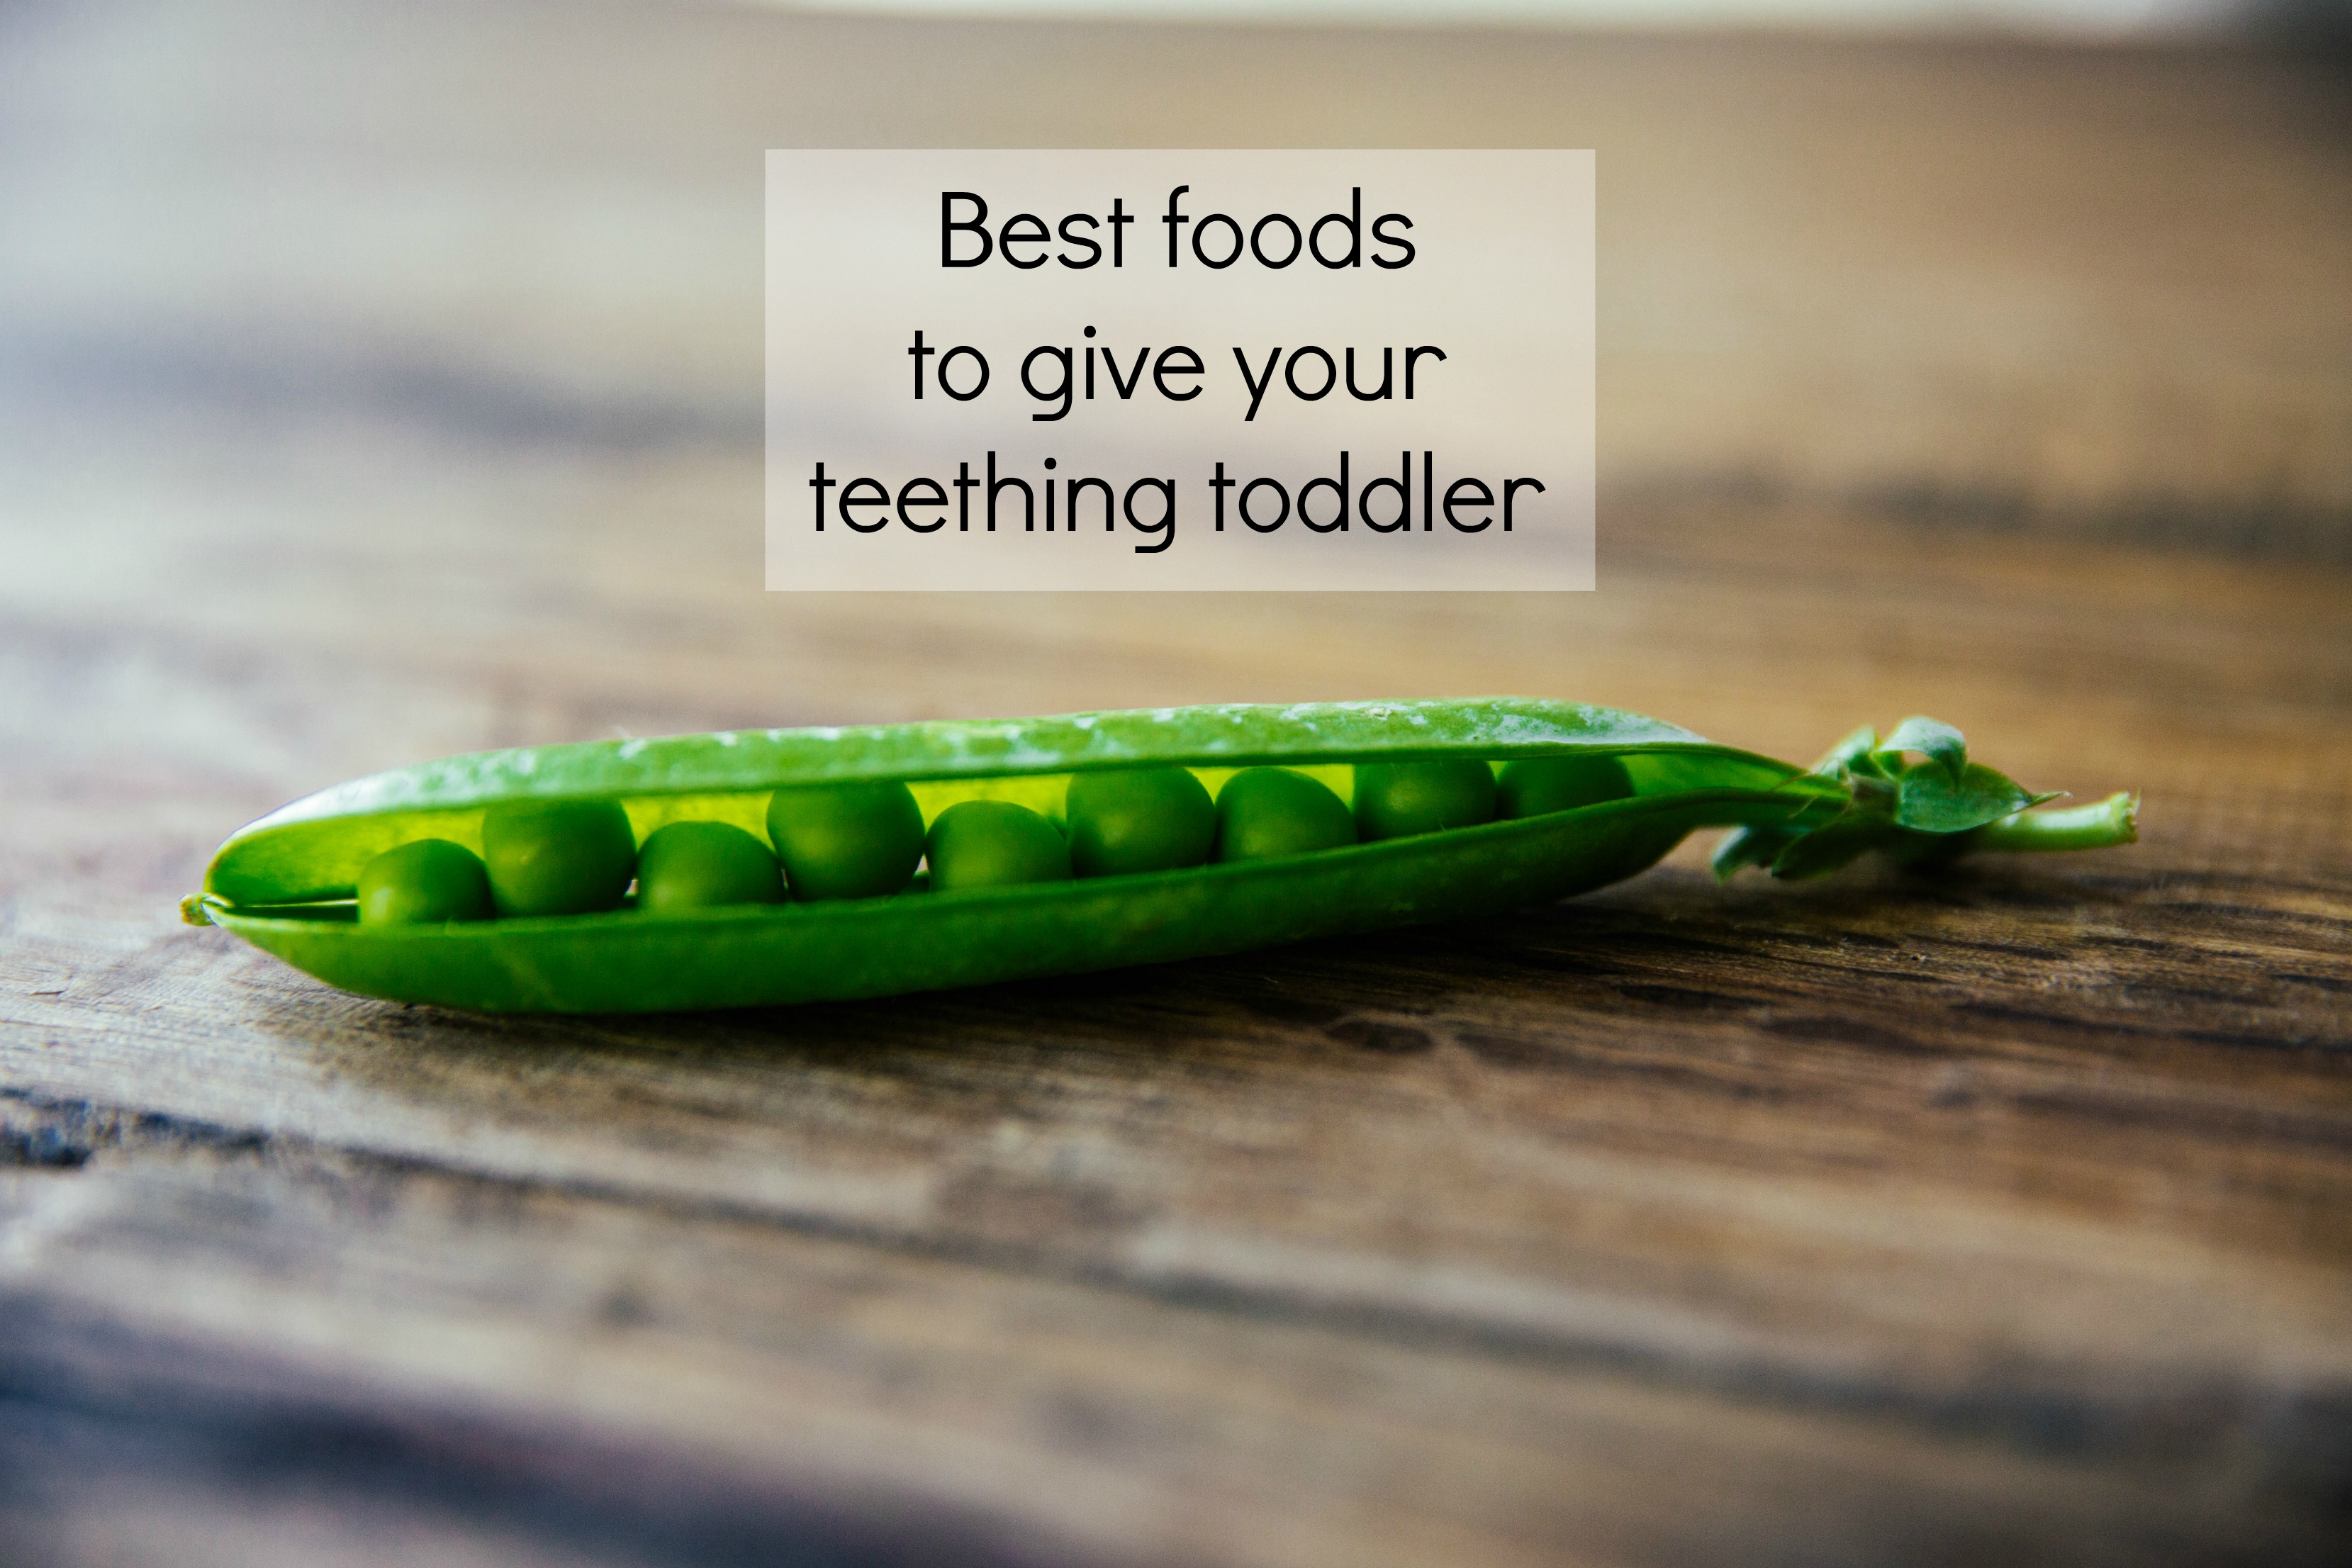 Best foods to give your teething toddler